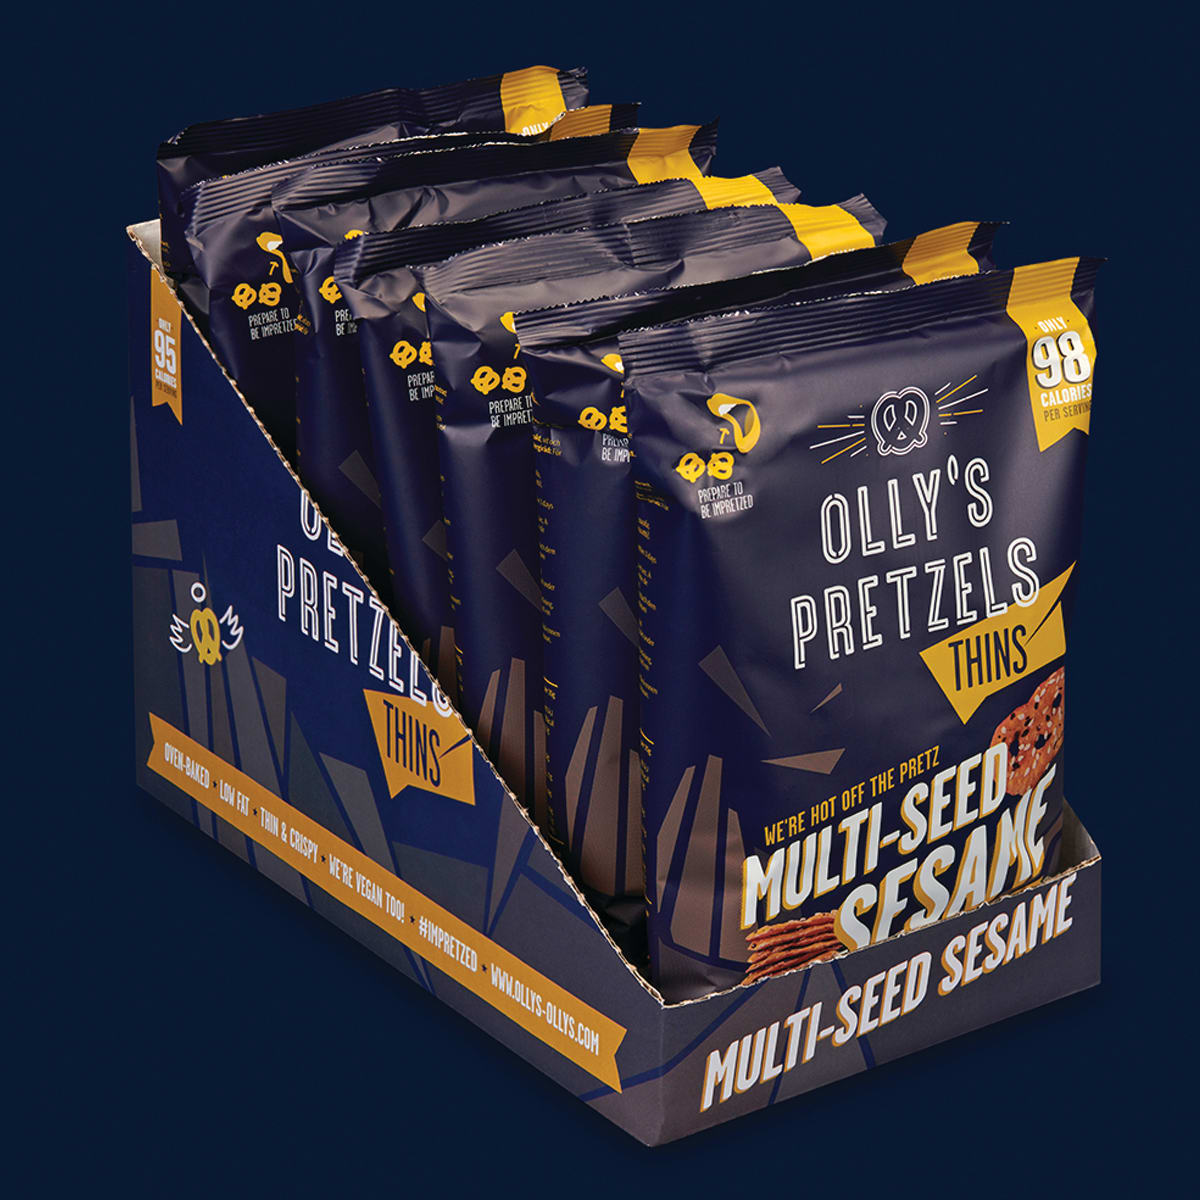 Box of 10, Olly's Sesame Pretzel Thins, oven-baked, suitable for vegans, 98 calories per pack, 80% less fat and 45% fewer calories than average potato crisps